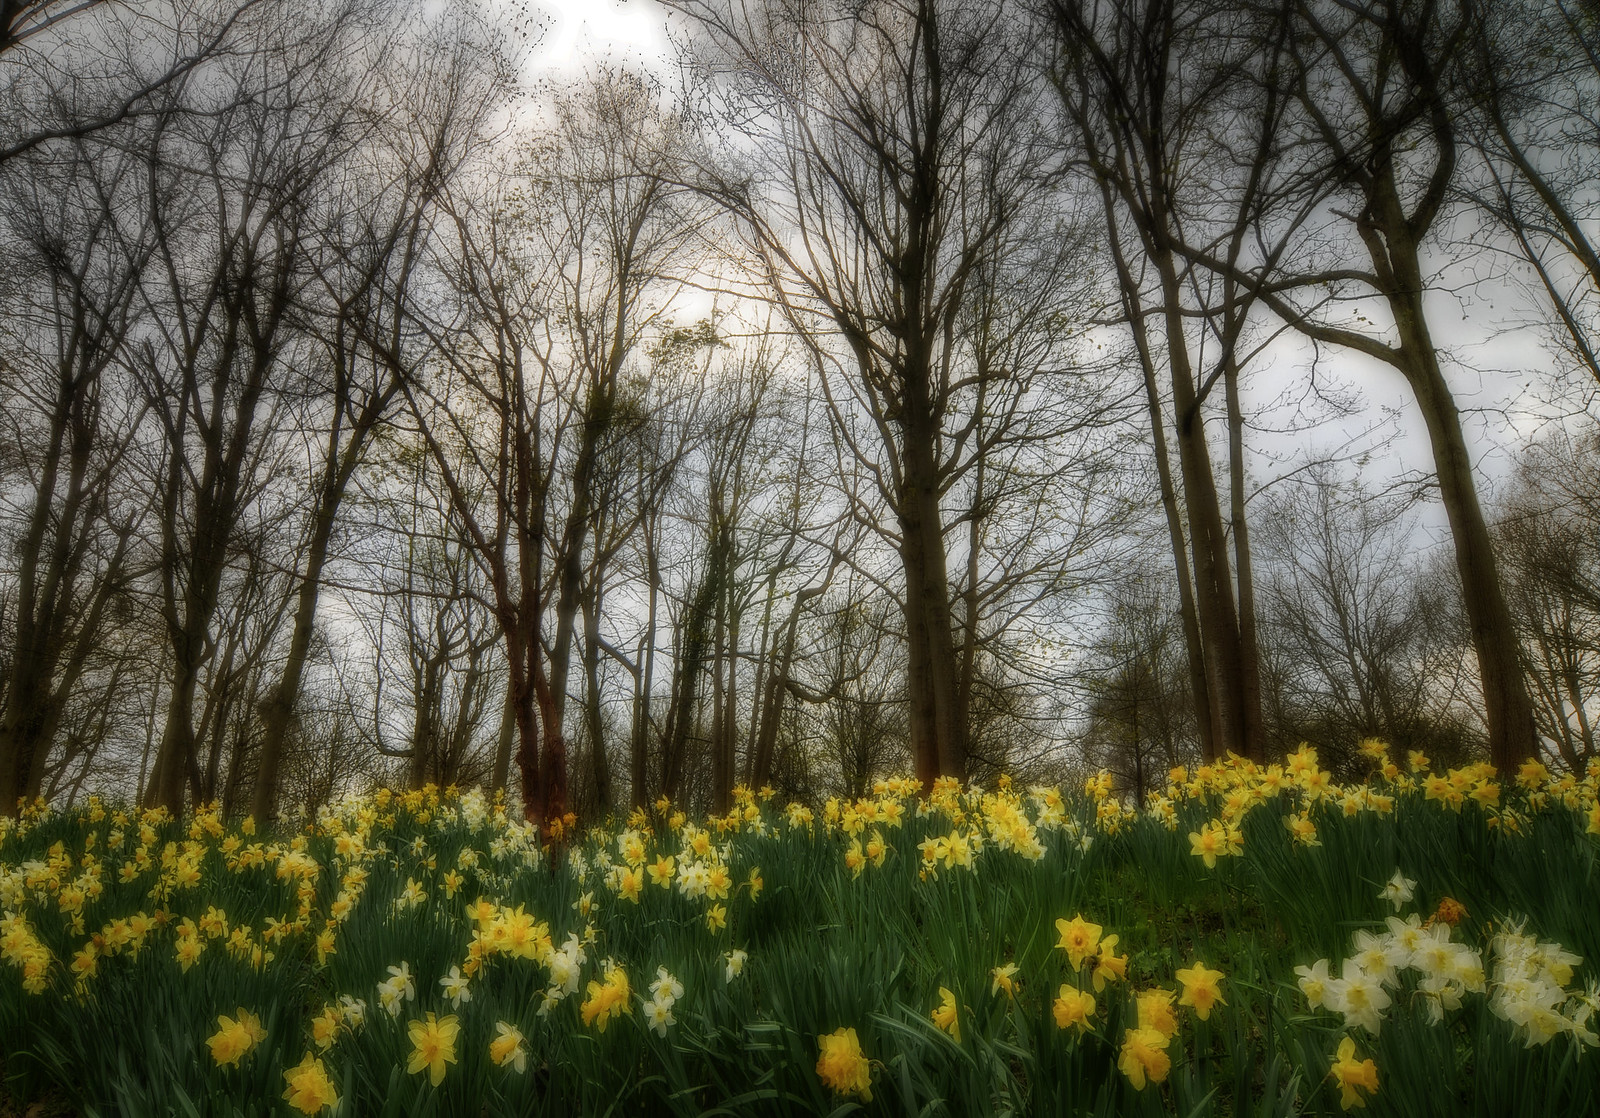 Moody The clouds were coming in a bit so I went for this shot of a bank of daffodils under a leaf-less tree canopy. Taken in the grounds of Chiddingstone Castle in Kent, England.